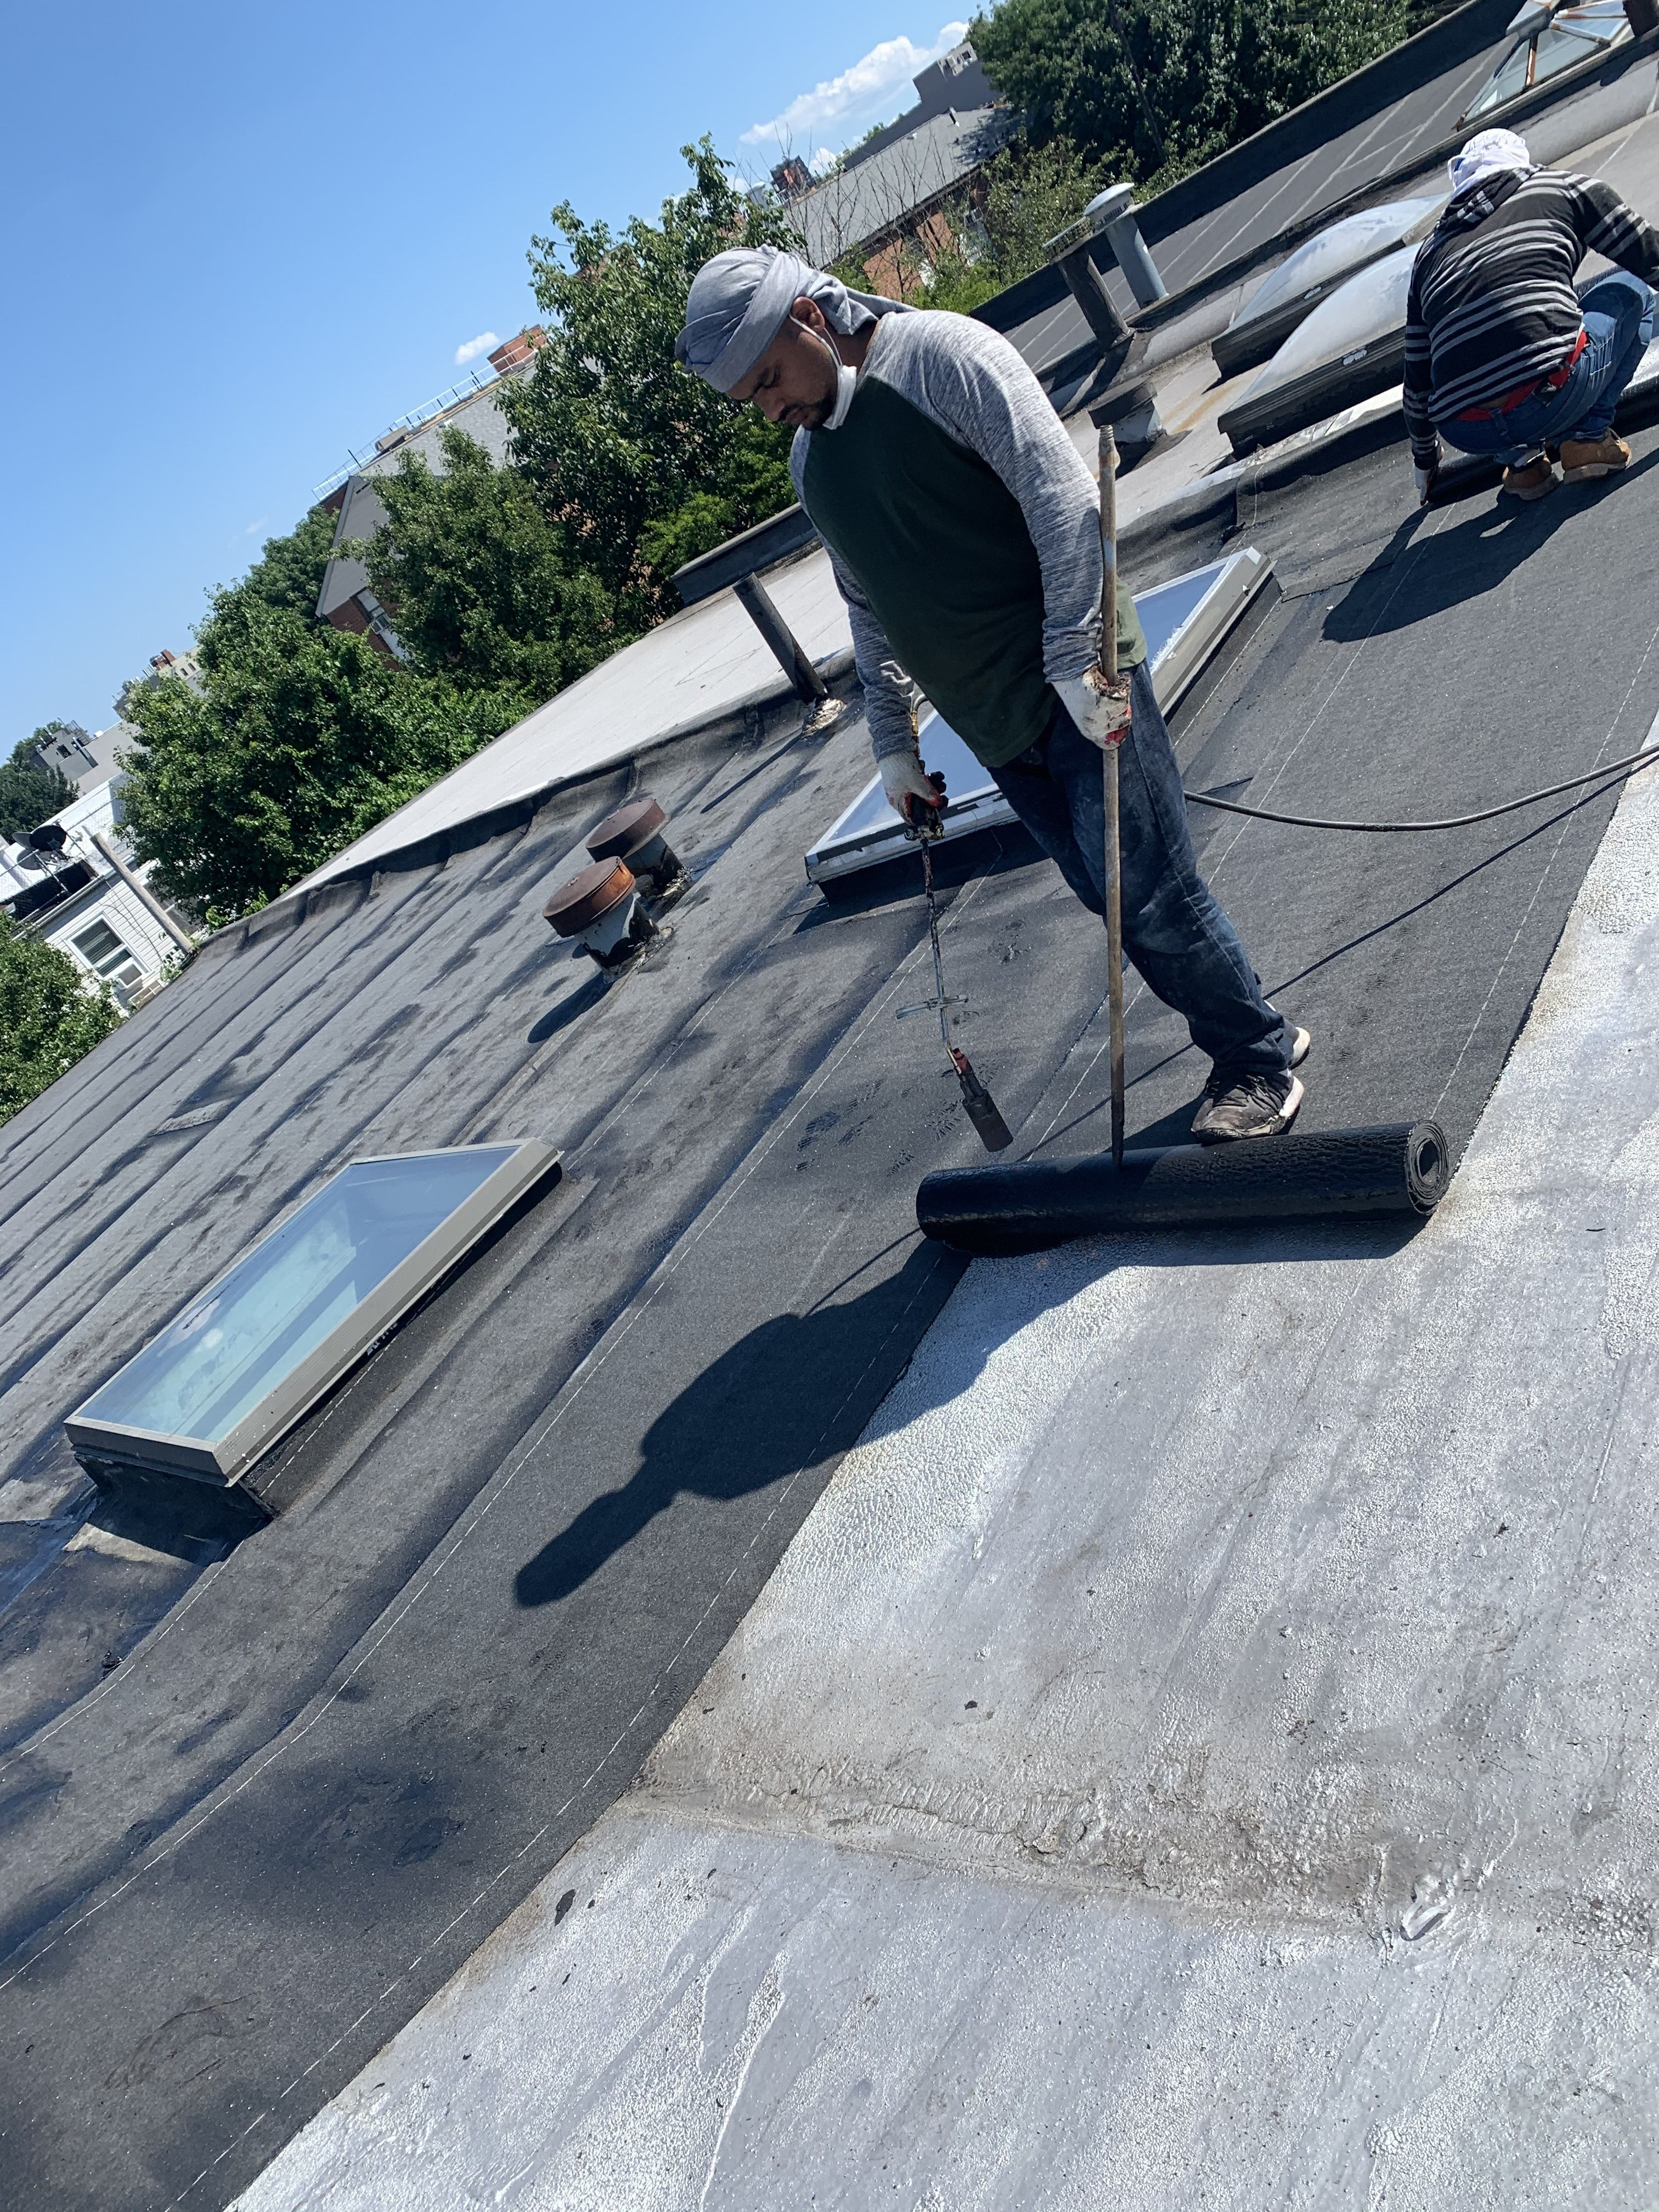 Roofing Contractor In Brooklyn In 2020 Roofing Contractors Roofing Services Cool Roof